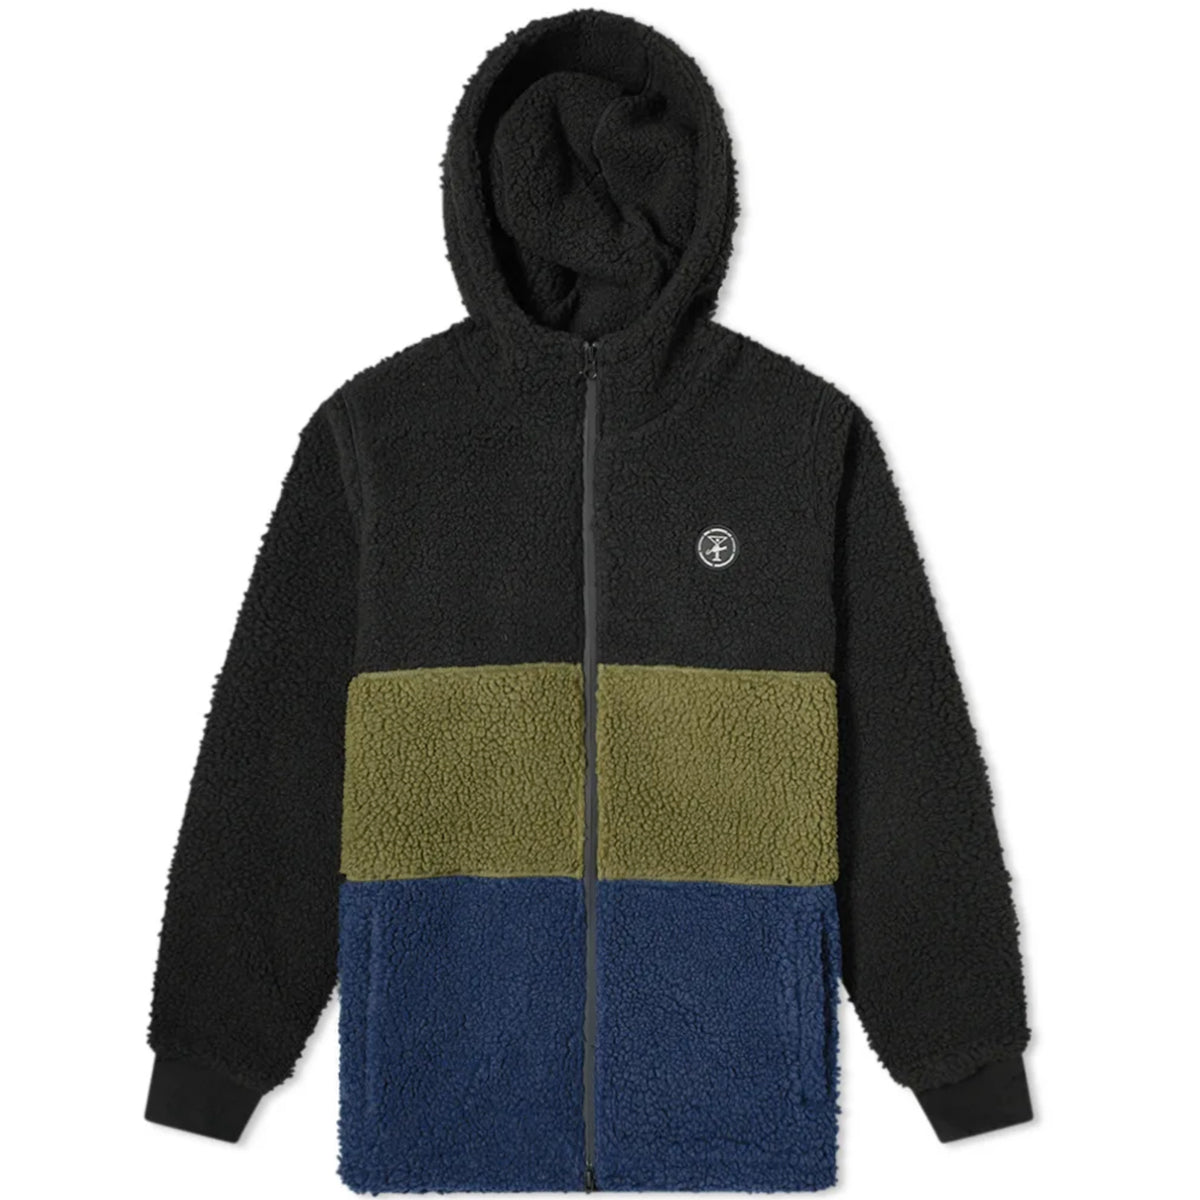 Alltimers Jacket Cousins Hooded Sherpa Black/Green